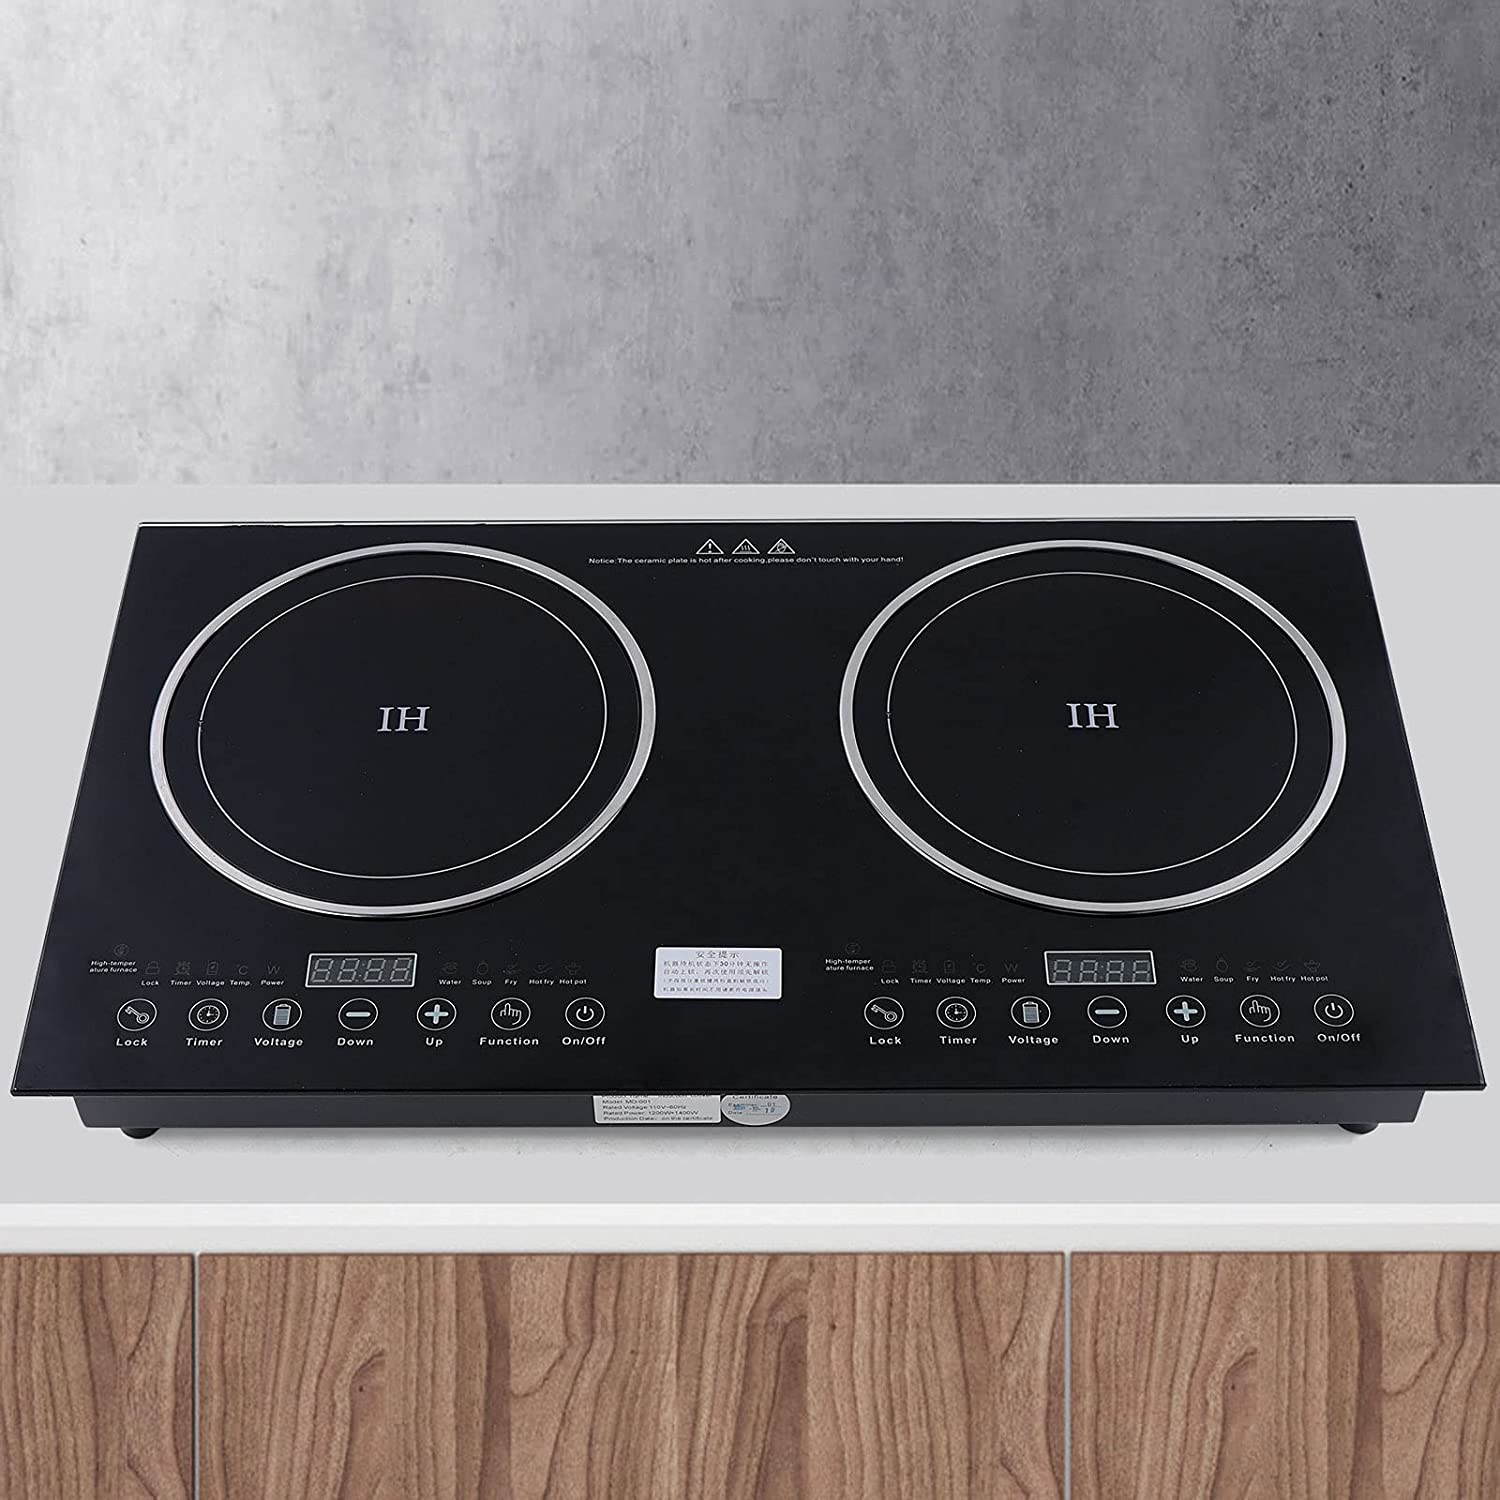 LOYALHEARTDY Double Induction Cooktop, Portable Electric Induction Cooker Infrared Burner Double Burner Faster Heat Dissipation Ceramic-Cooker Cooktop Countertop 1200W + 1400W